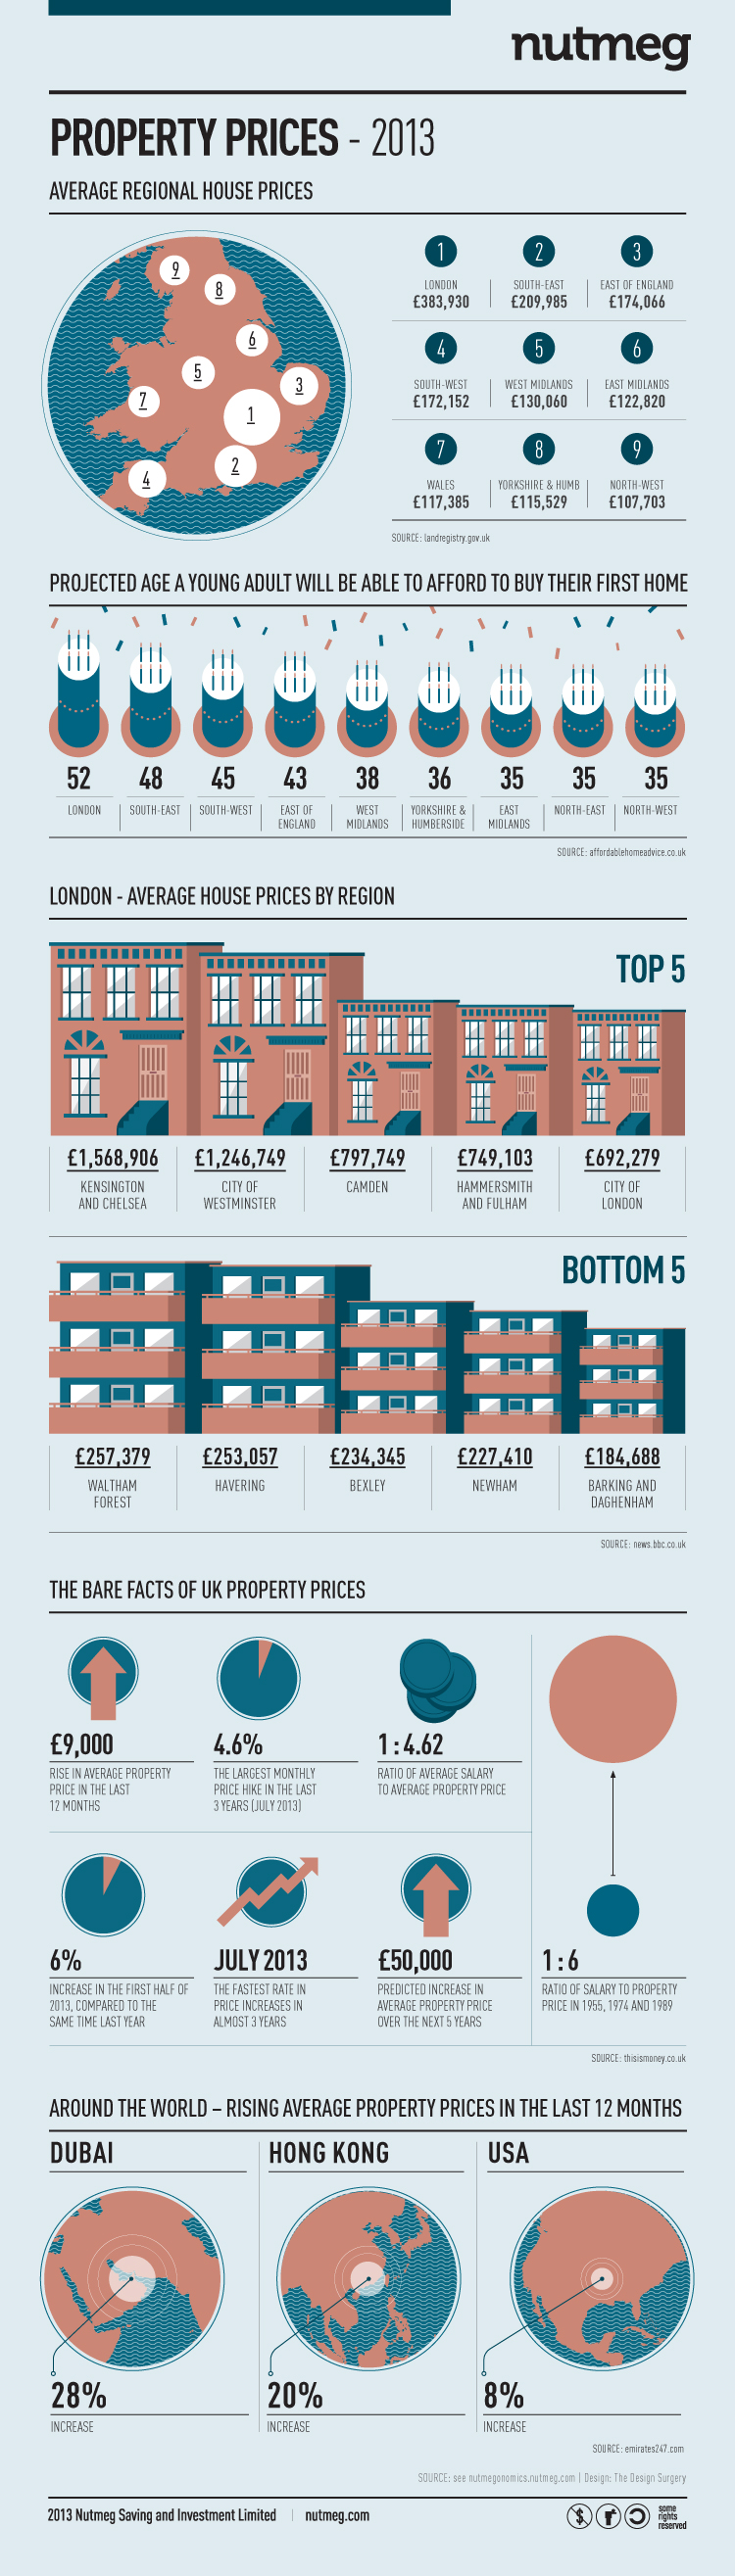 Property prices in the UK